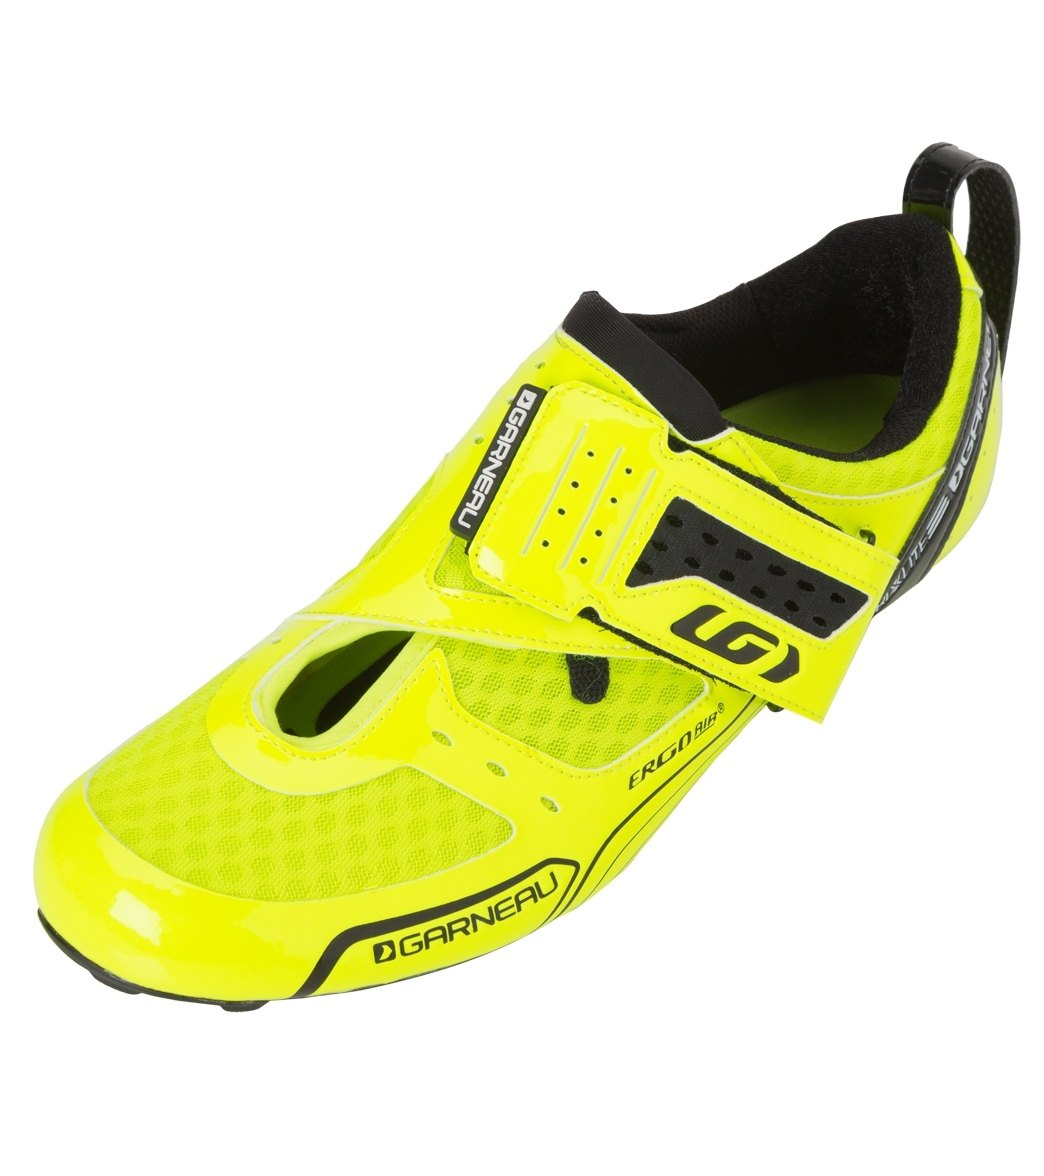 louis garneau men 39 s tri x lite cycling shoes at free shipping. Black Bedroom Furniture Sets. Home Design Ideas